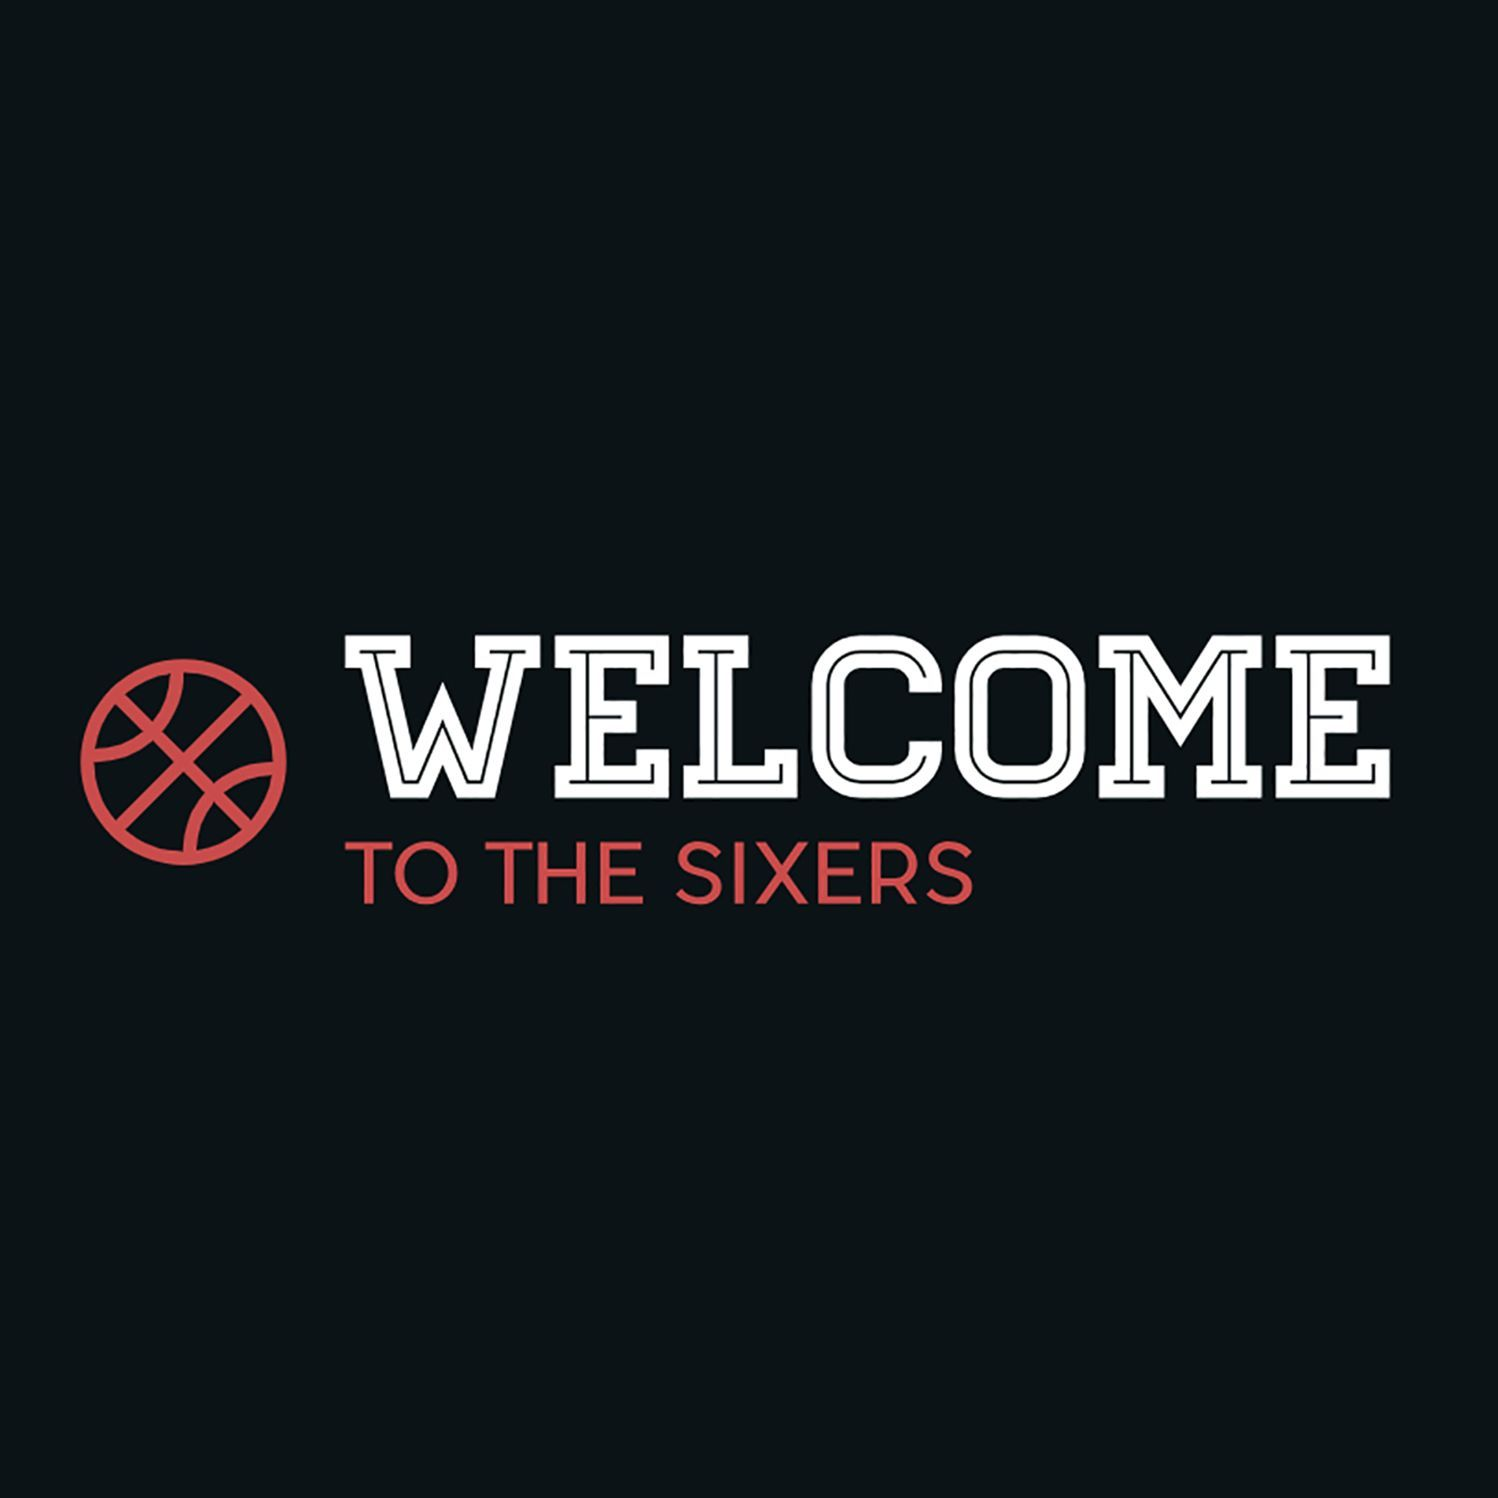 Welcome To The Sixers S:02 Ep:02 The 5-0 Sixers May Never Lose Again